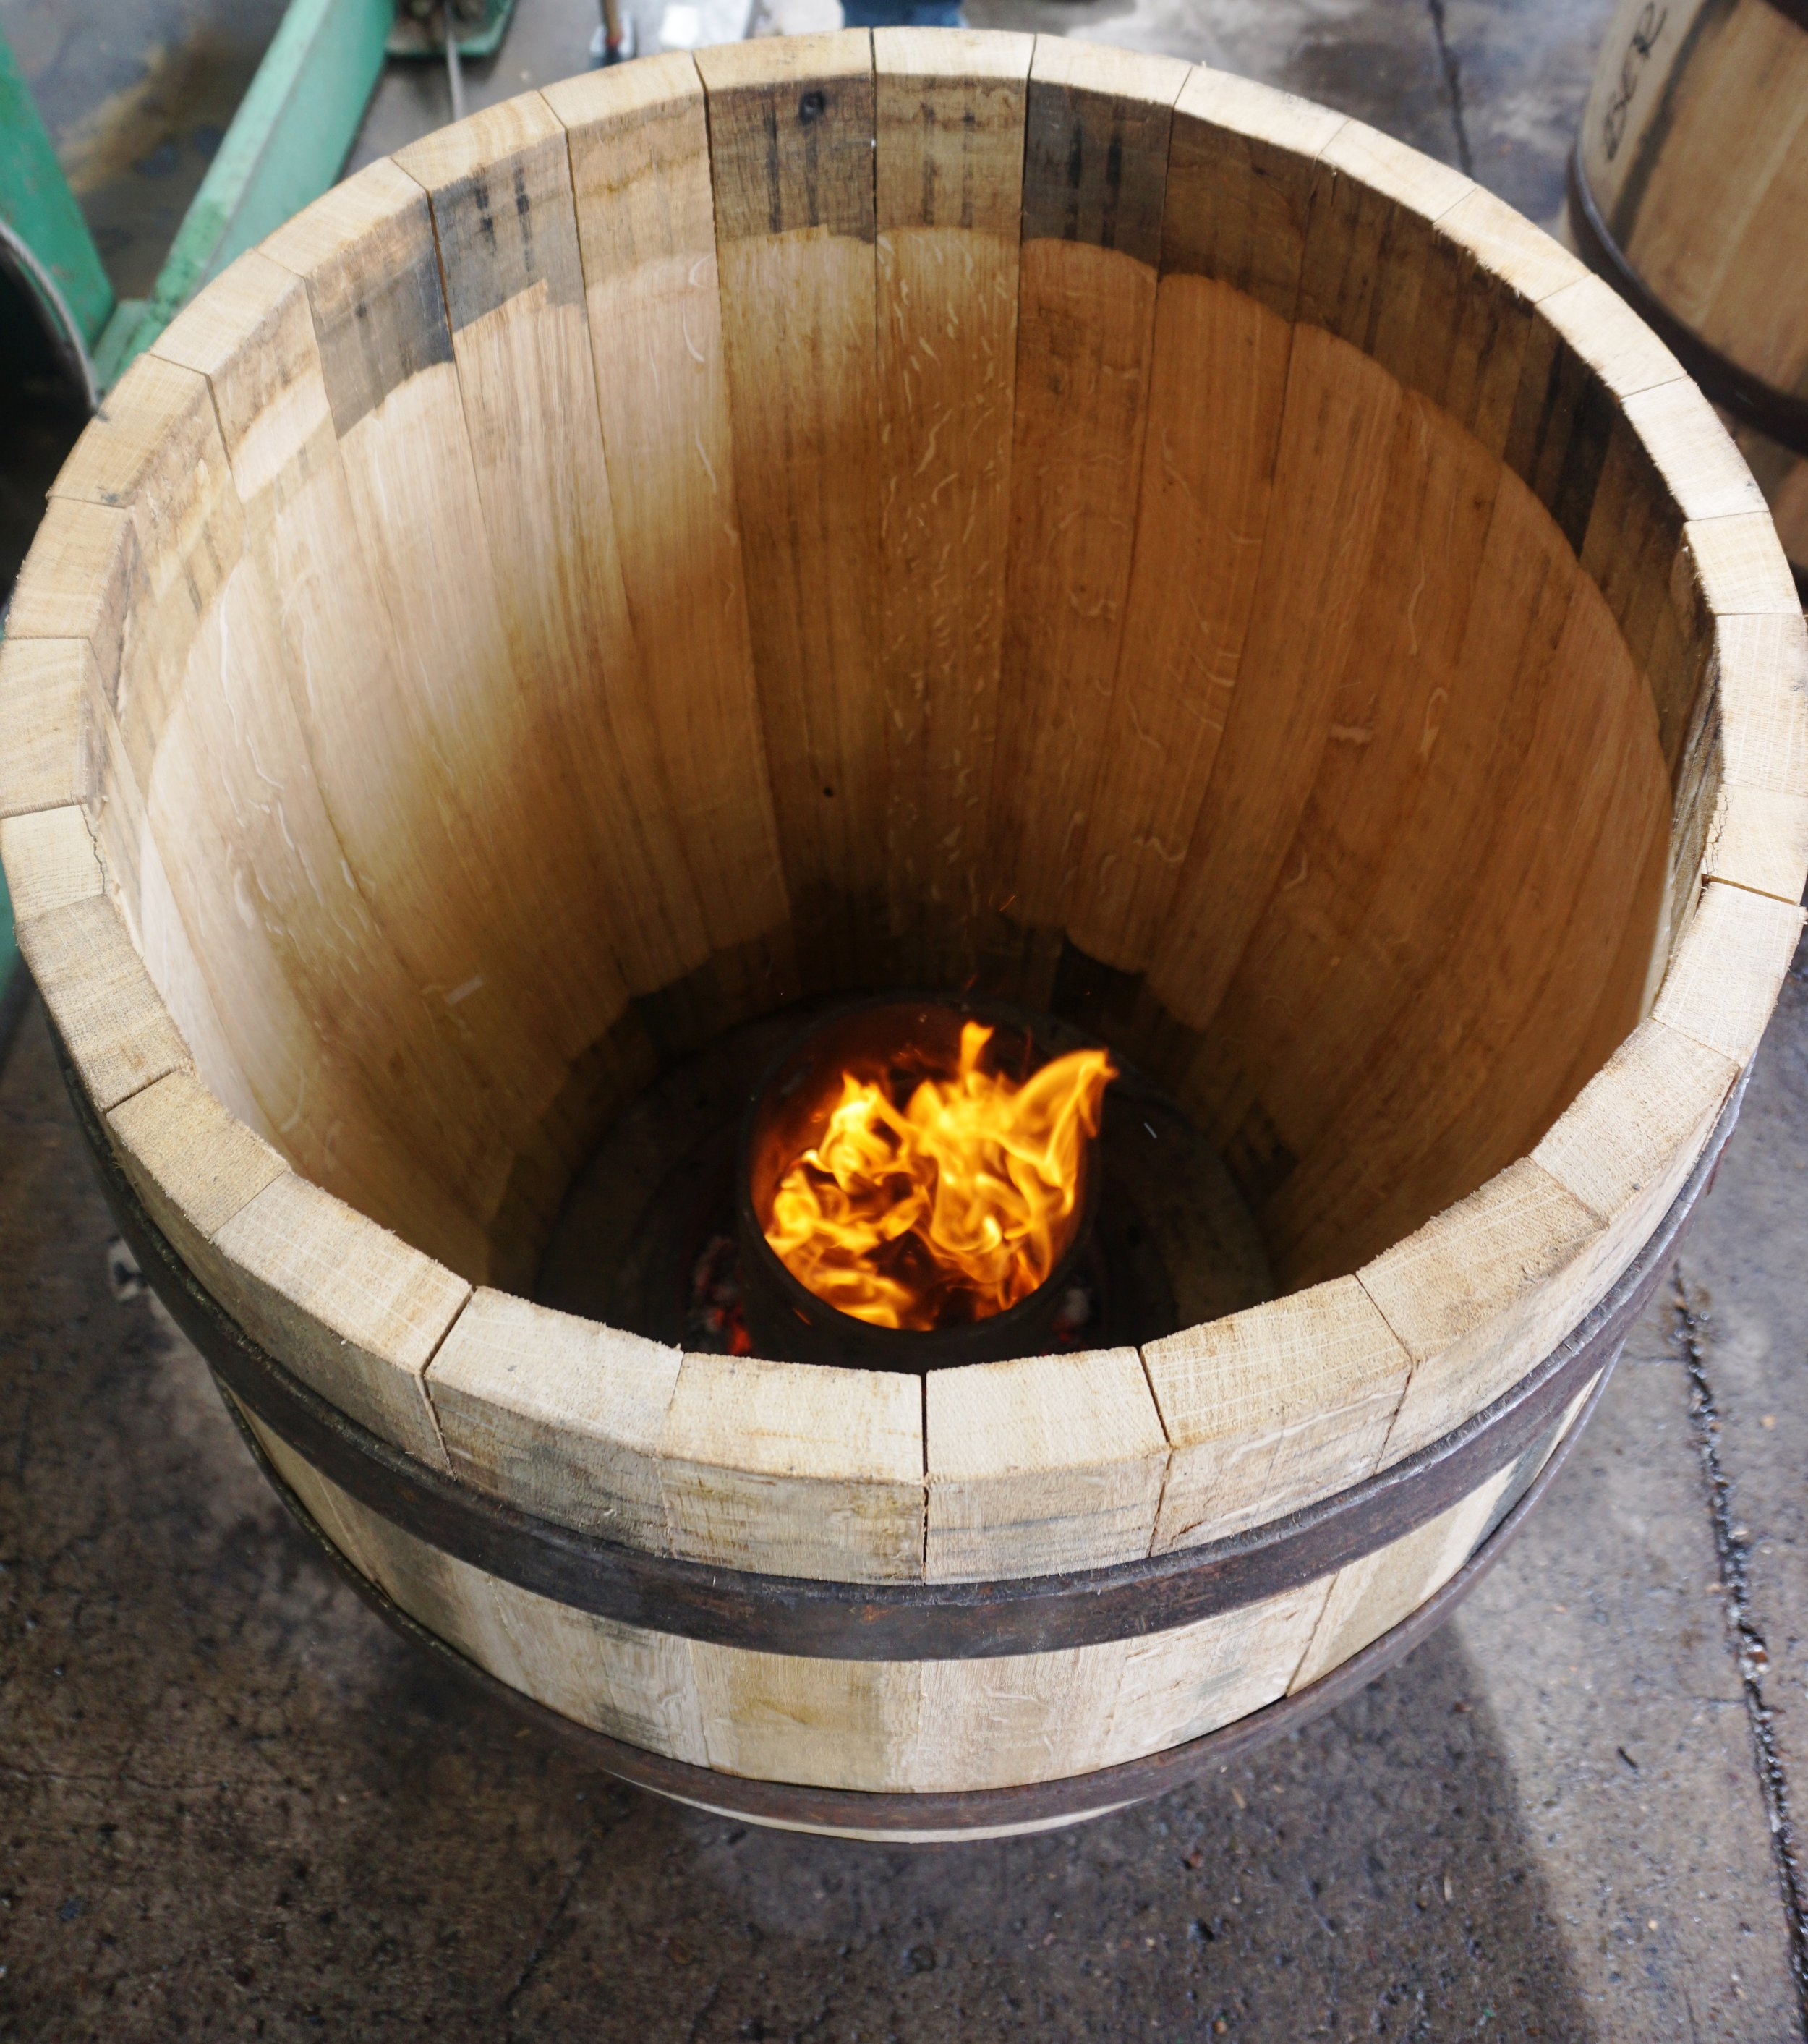 "Oregon Barrel Works in McMinnville, OR seeks to keep the centuries-old trade of coopering alive and spread Oregon's reputation as a premium oak producer one barrel at a time by blending ""old world tradition with new world innovation."" Viki Eierdam"